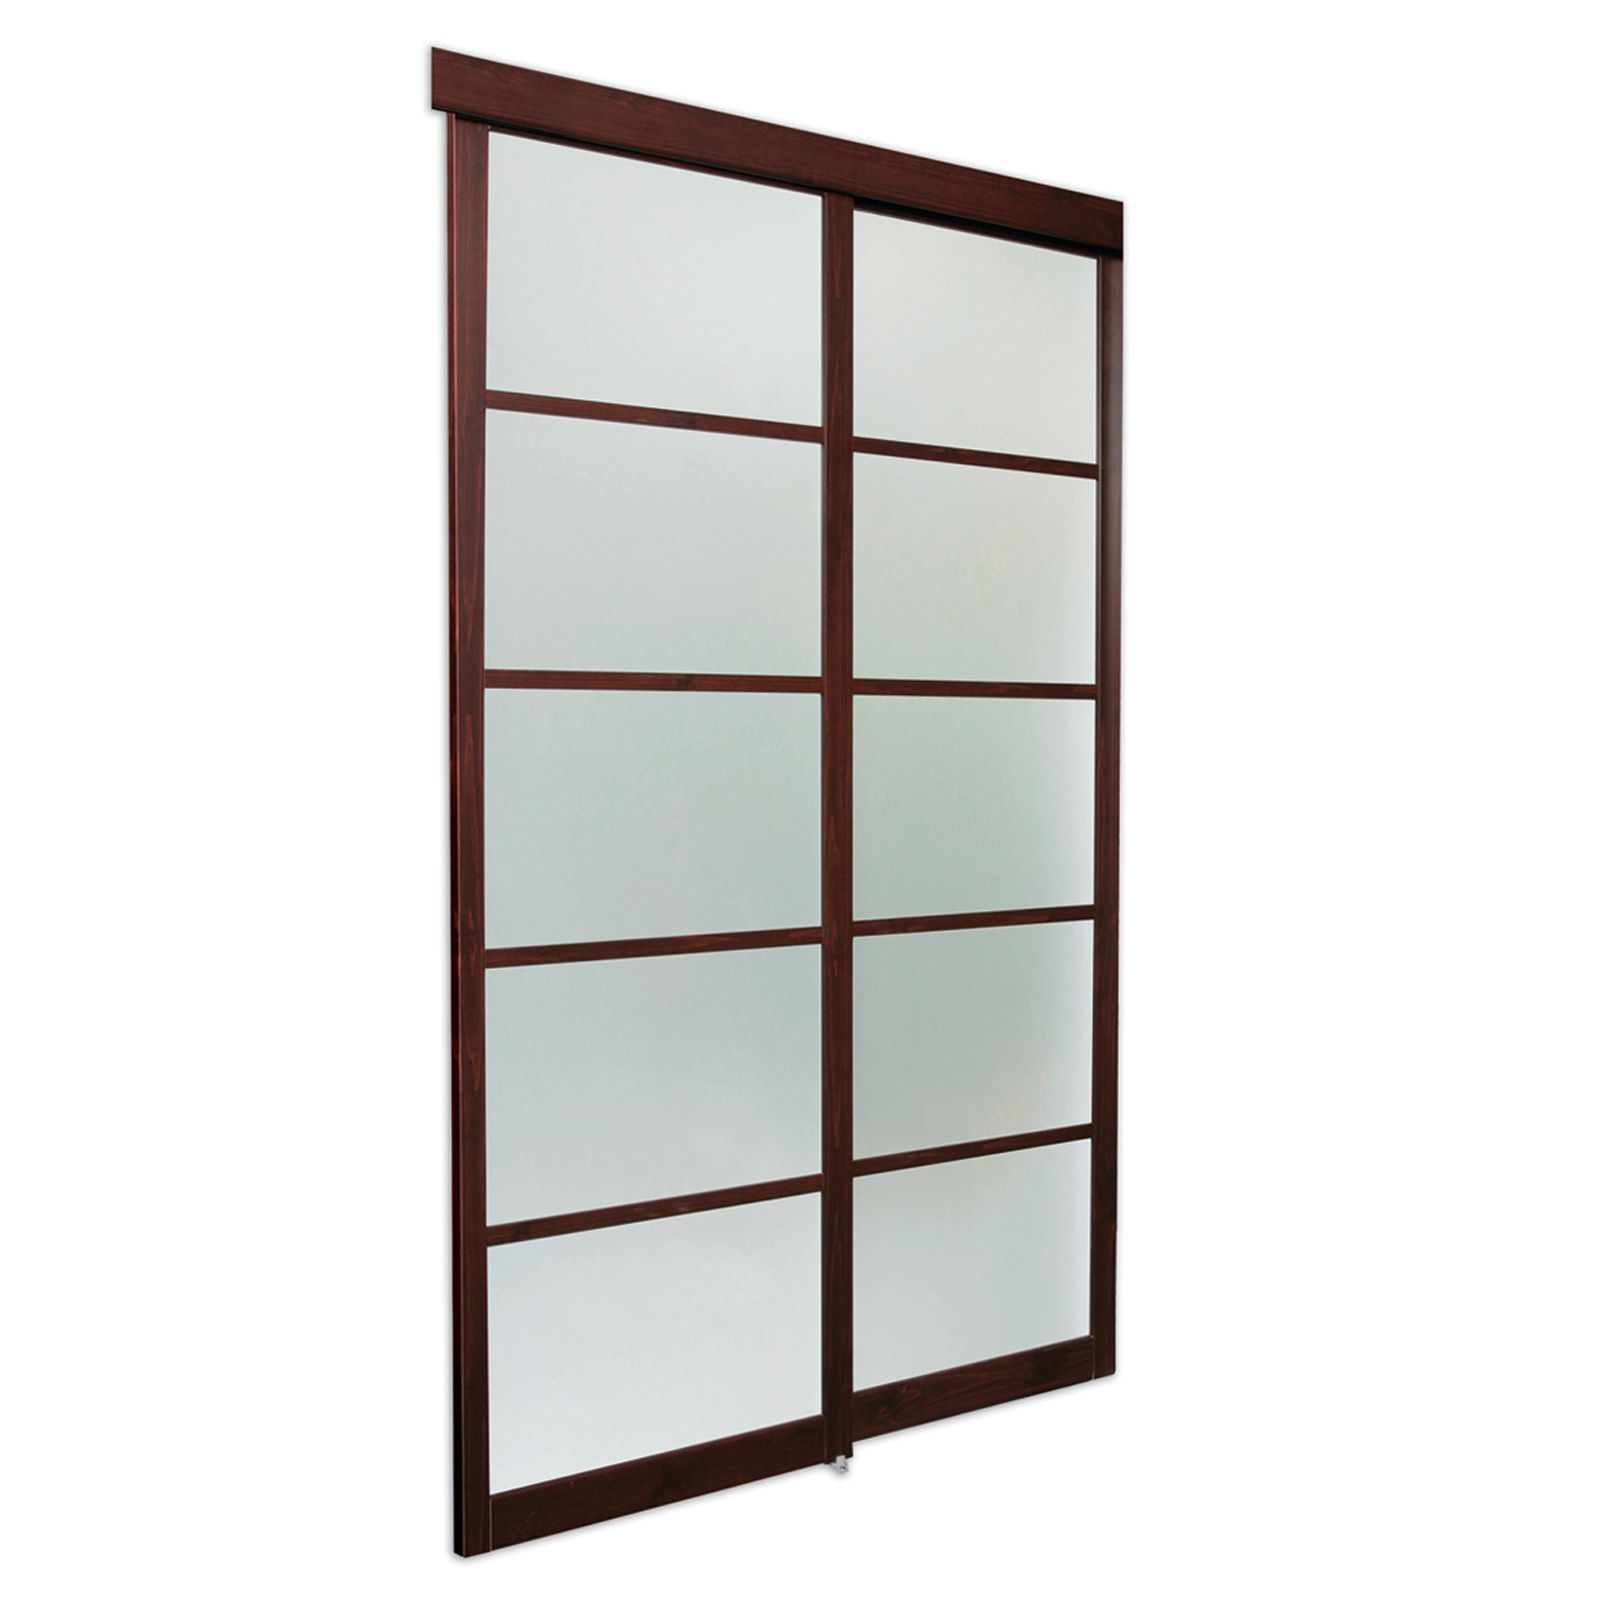 Asian frosted glass with expresso laminated wood